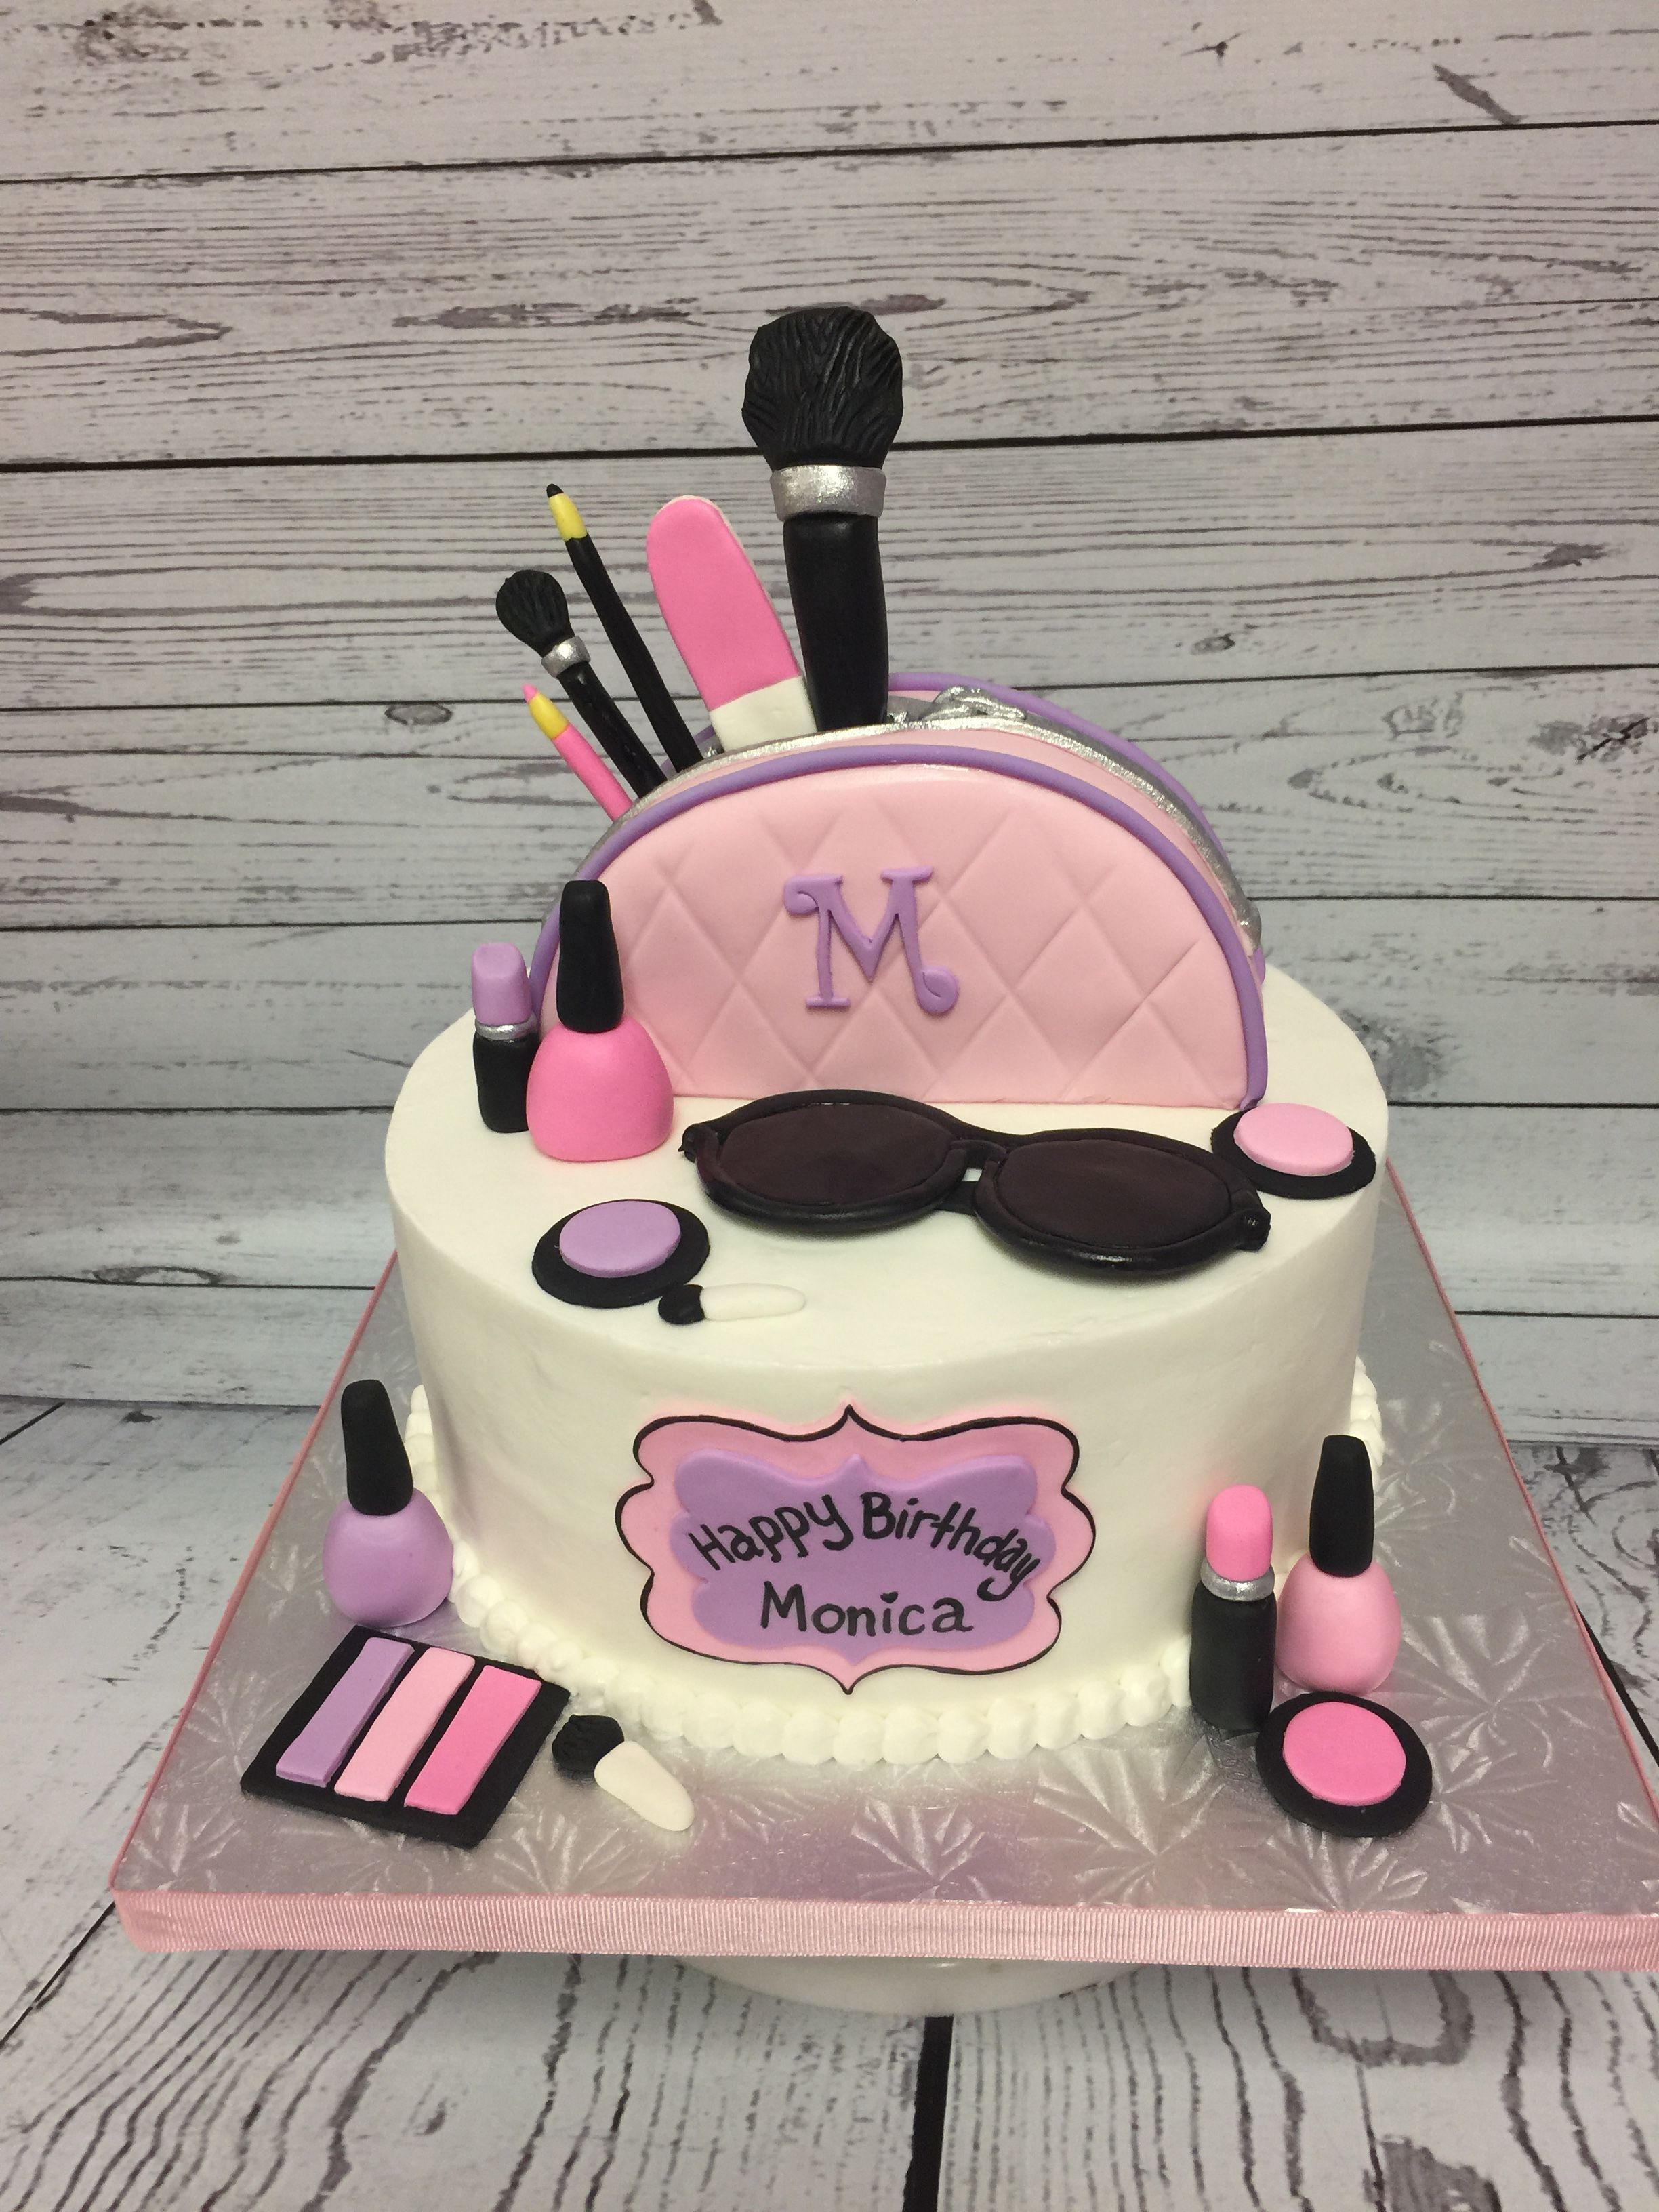 Makeup Themed Birthday Cake Handmade Fondant Accents Made By Cakes Kena